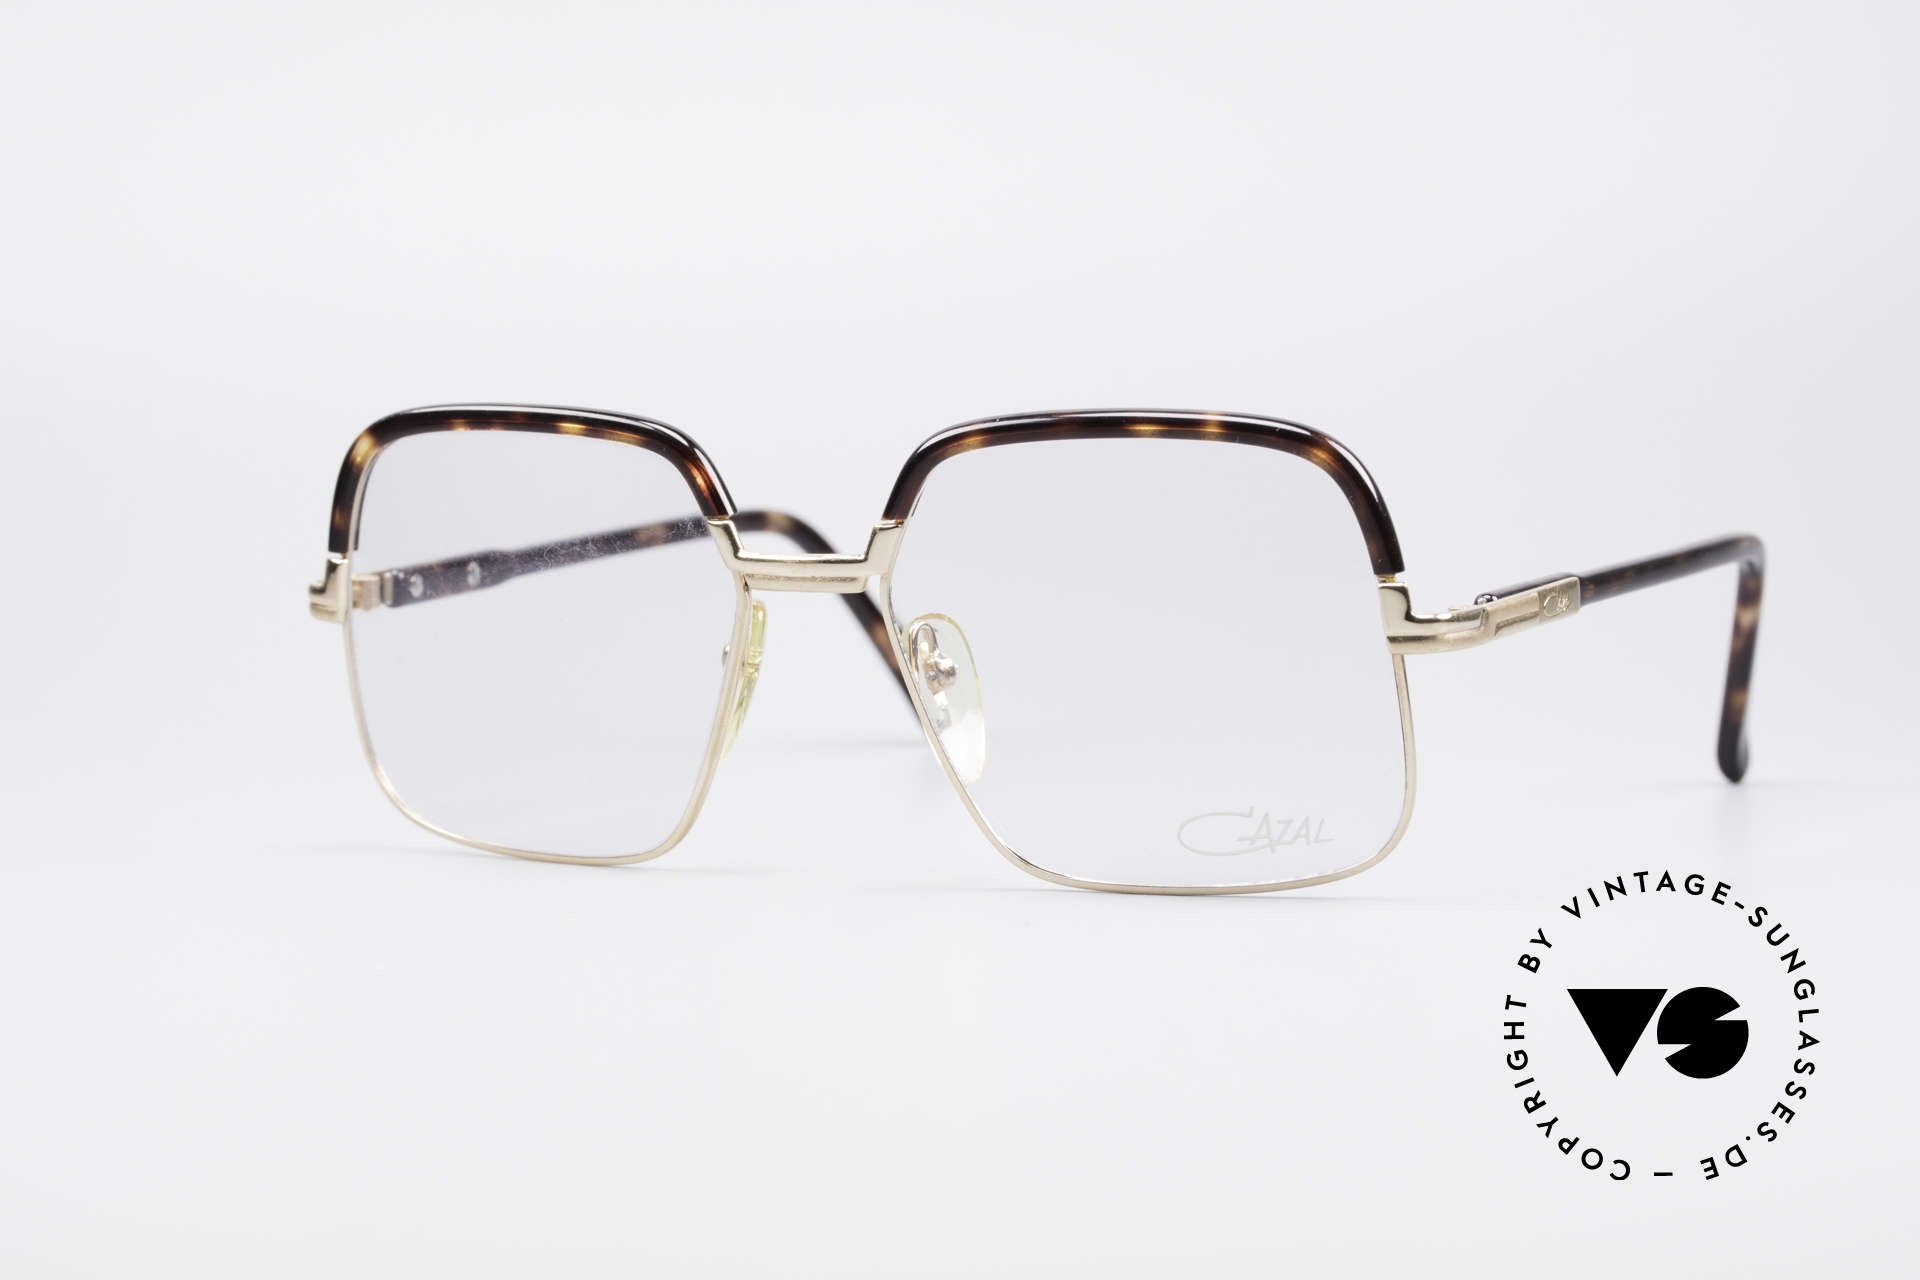 Cazal 704 70's Combi Glasses First Series, ultra rare vintage Cazal eyeglasses from the late 1970's, Made for Men